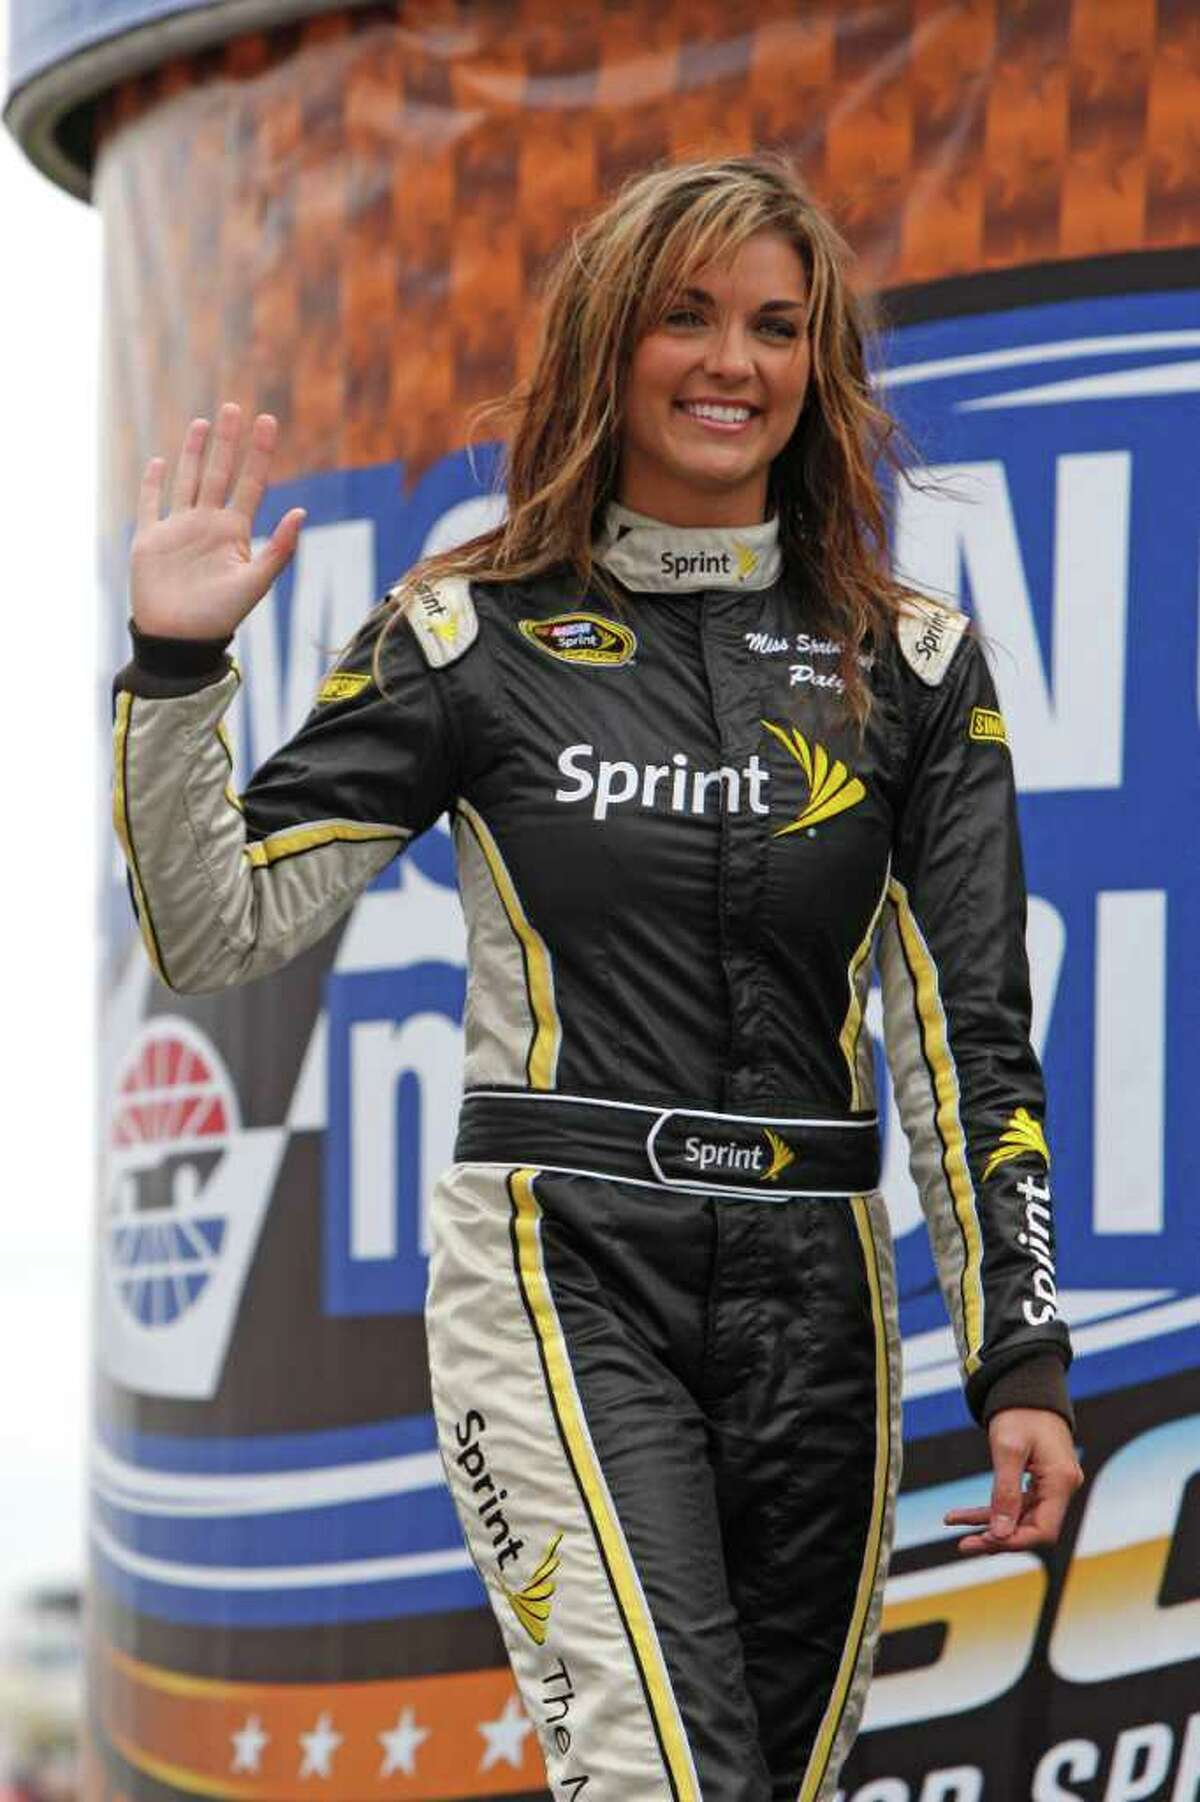 FILE - This April 19, 2010, file photo shows Miss Sprint Cup Paige Duke during driver introductions before the start of the NASCAR Sprint Cup Samsung Mobile 500 auto race at Texas Motor Speedway, in Fort Worth, Texas. NASCAR's Miss Sprint Cup has been let go after nude pictures of her appeared online. Paige Duke told The Charlotte Observer the pictures were taken when she was a freshman at Clemson University and were only meant for her boyfriend at the time.